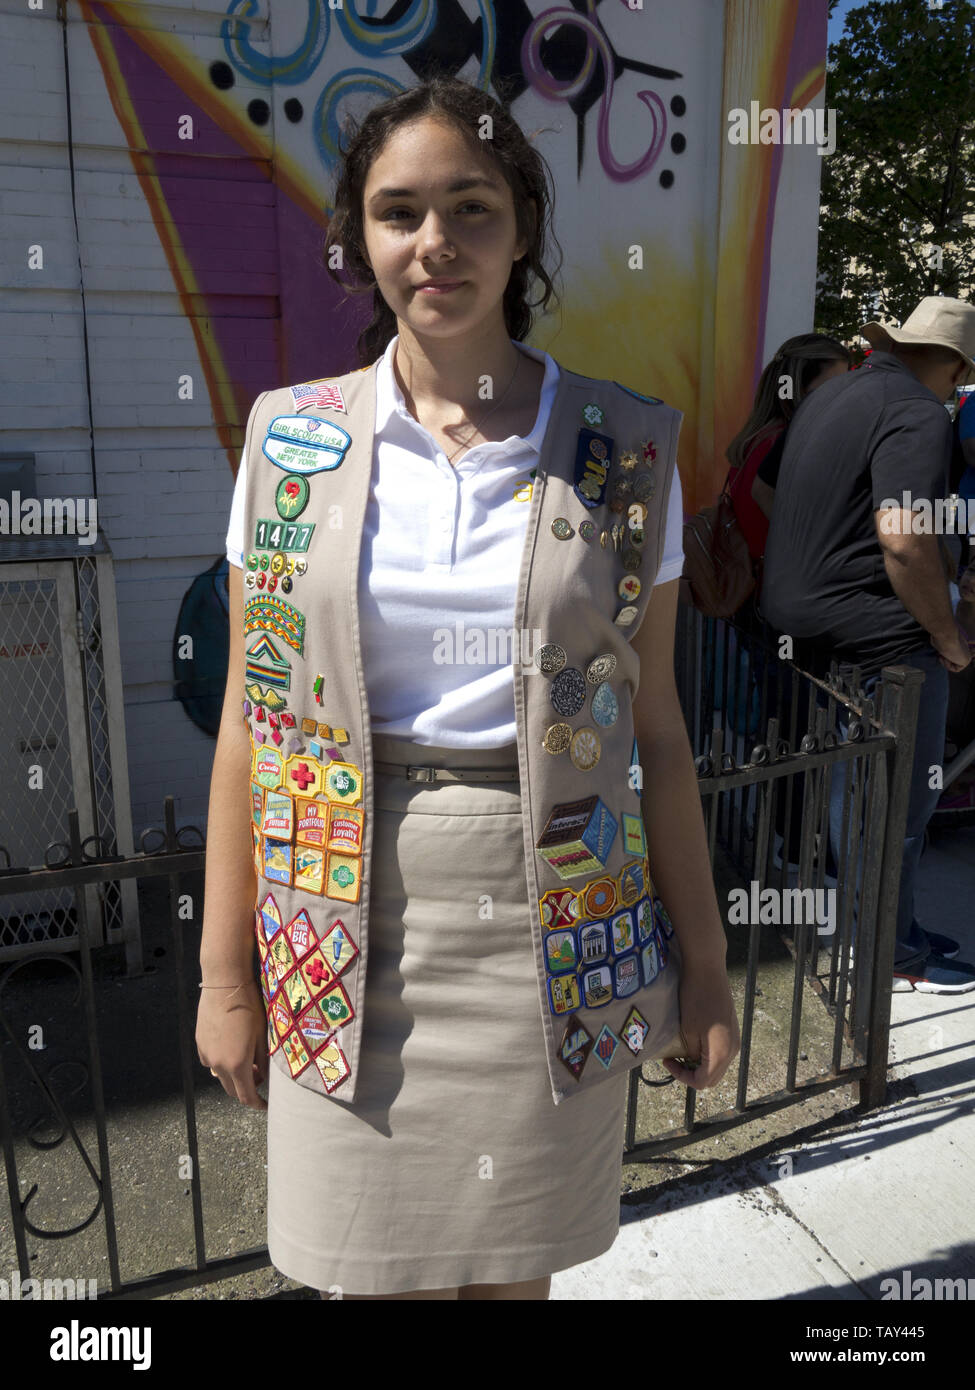 Sixteen year old, Ambassador Girl Scout at The Kings County 152nd Memorial Parade in the Bay Ridge section of Brooklyn, NY, May 27, 20019. Her many me - Stock Image